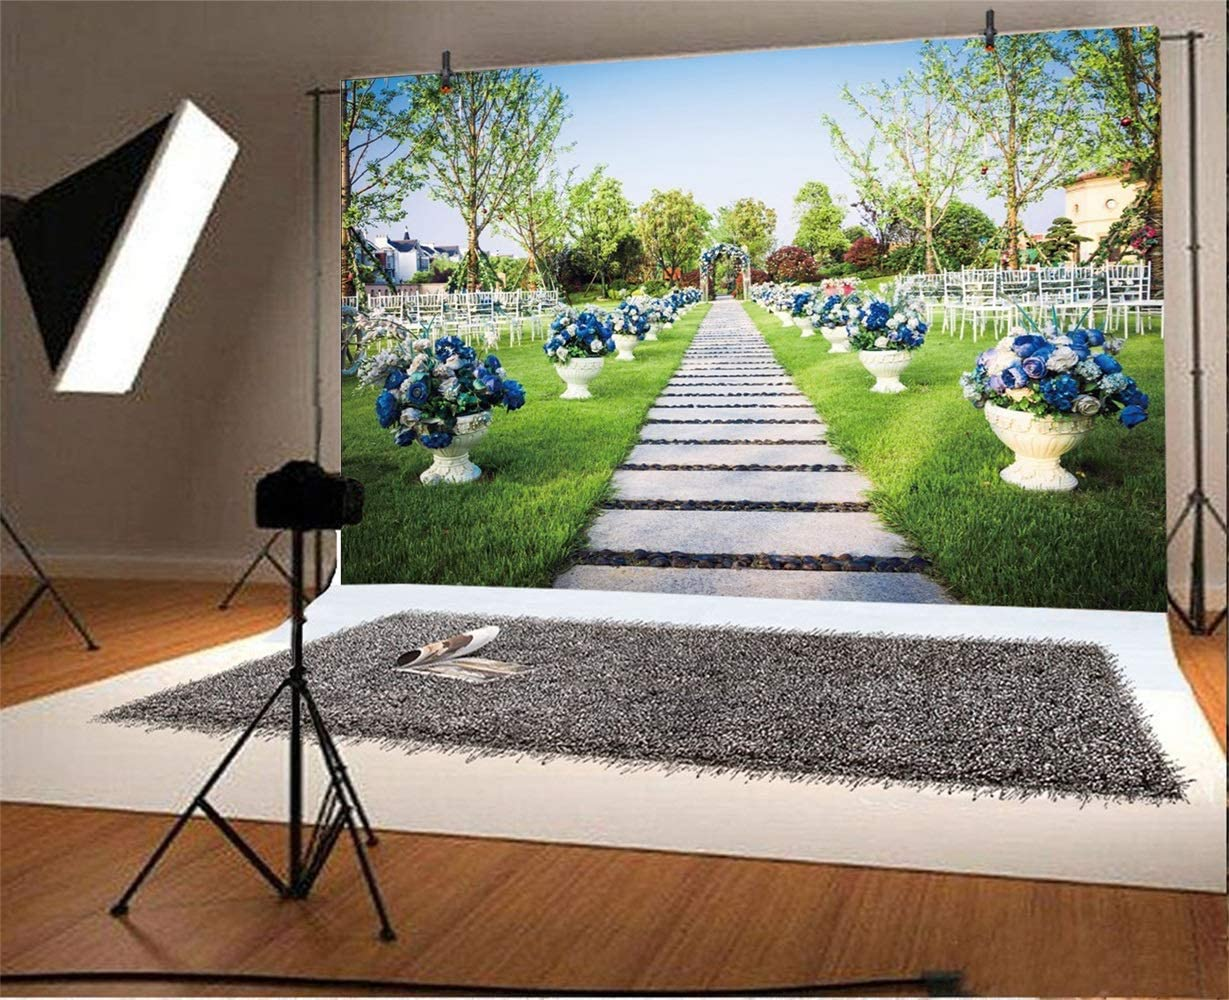 Garden Wedding Backdrop 10x6.5ft Polyester Royal Blue Flowers Stand Lond Cement Board Way to Wedding Ceremony Booth Photography Background Bride Groom Wedding Portrait Shoot Bride Shower Party